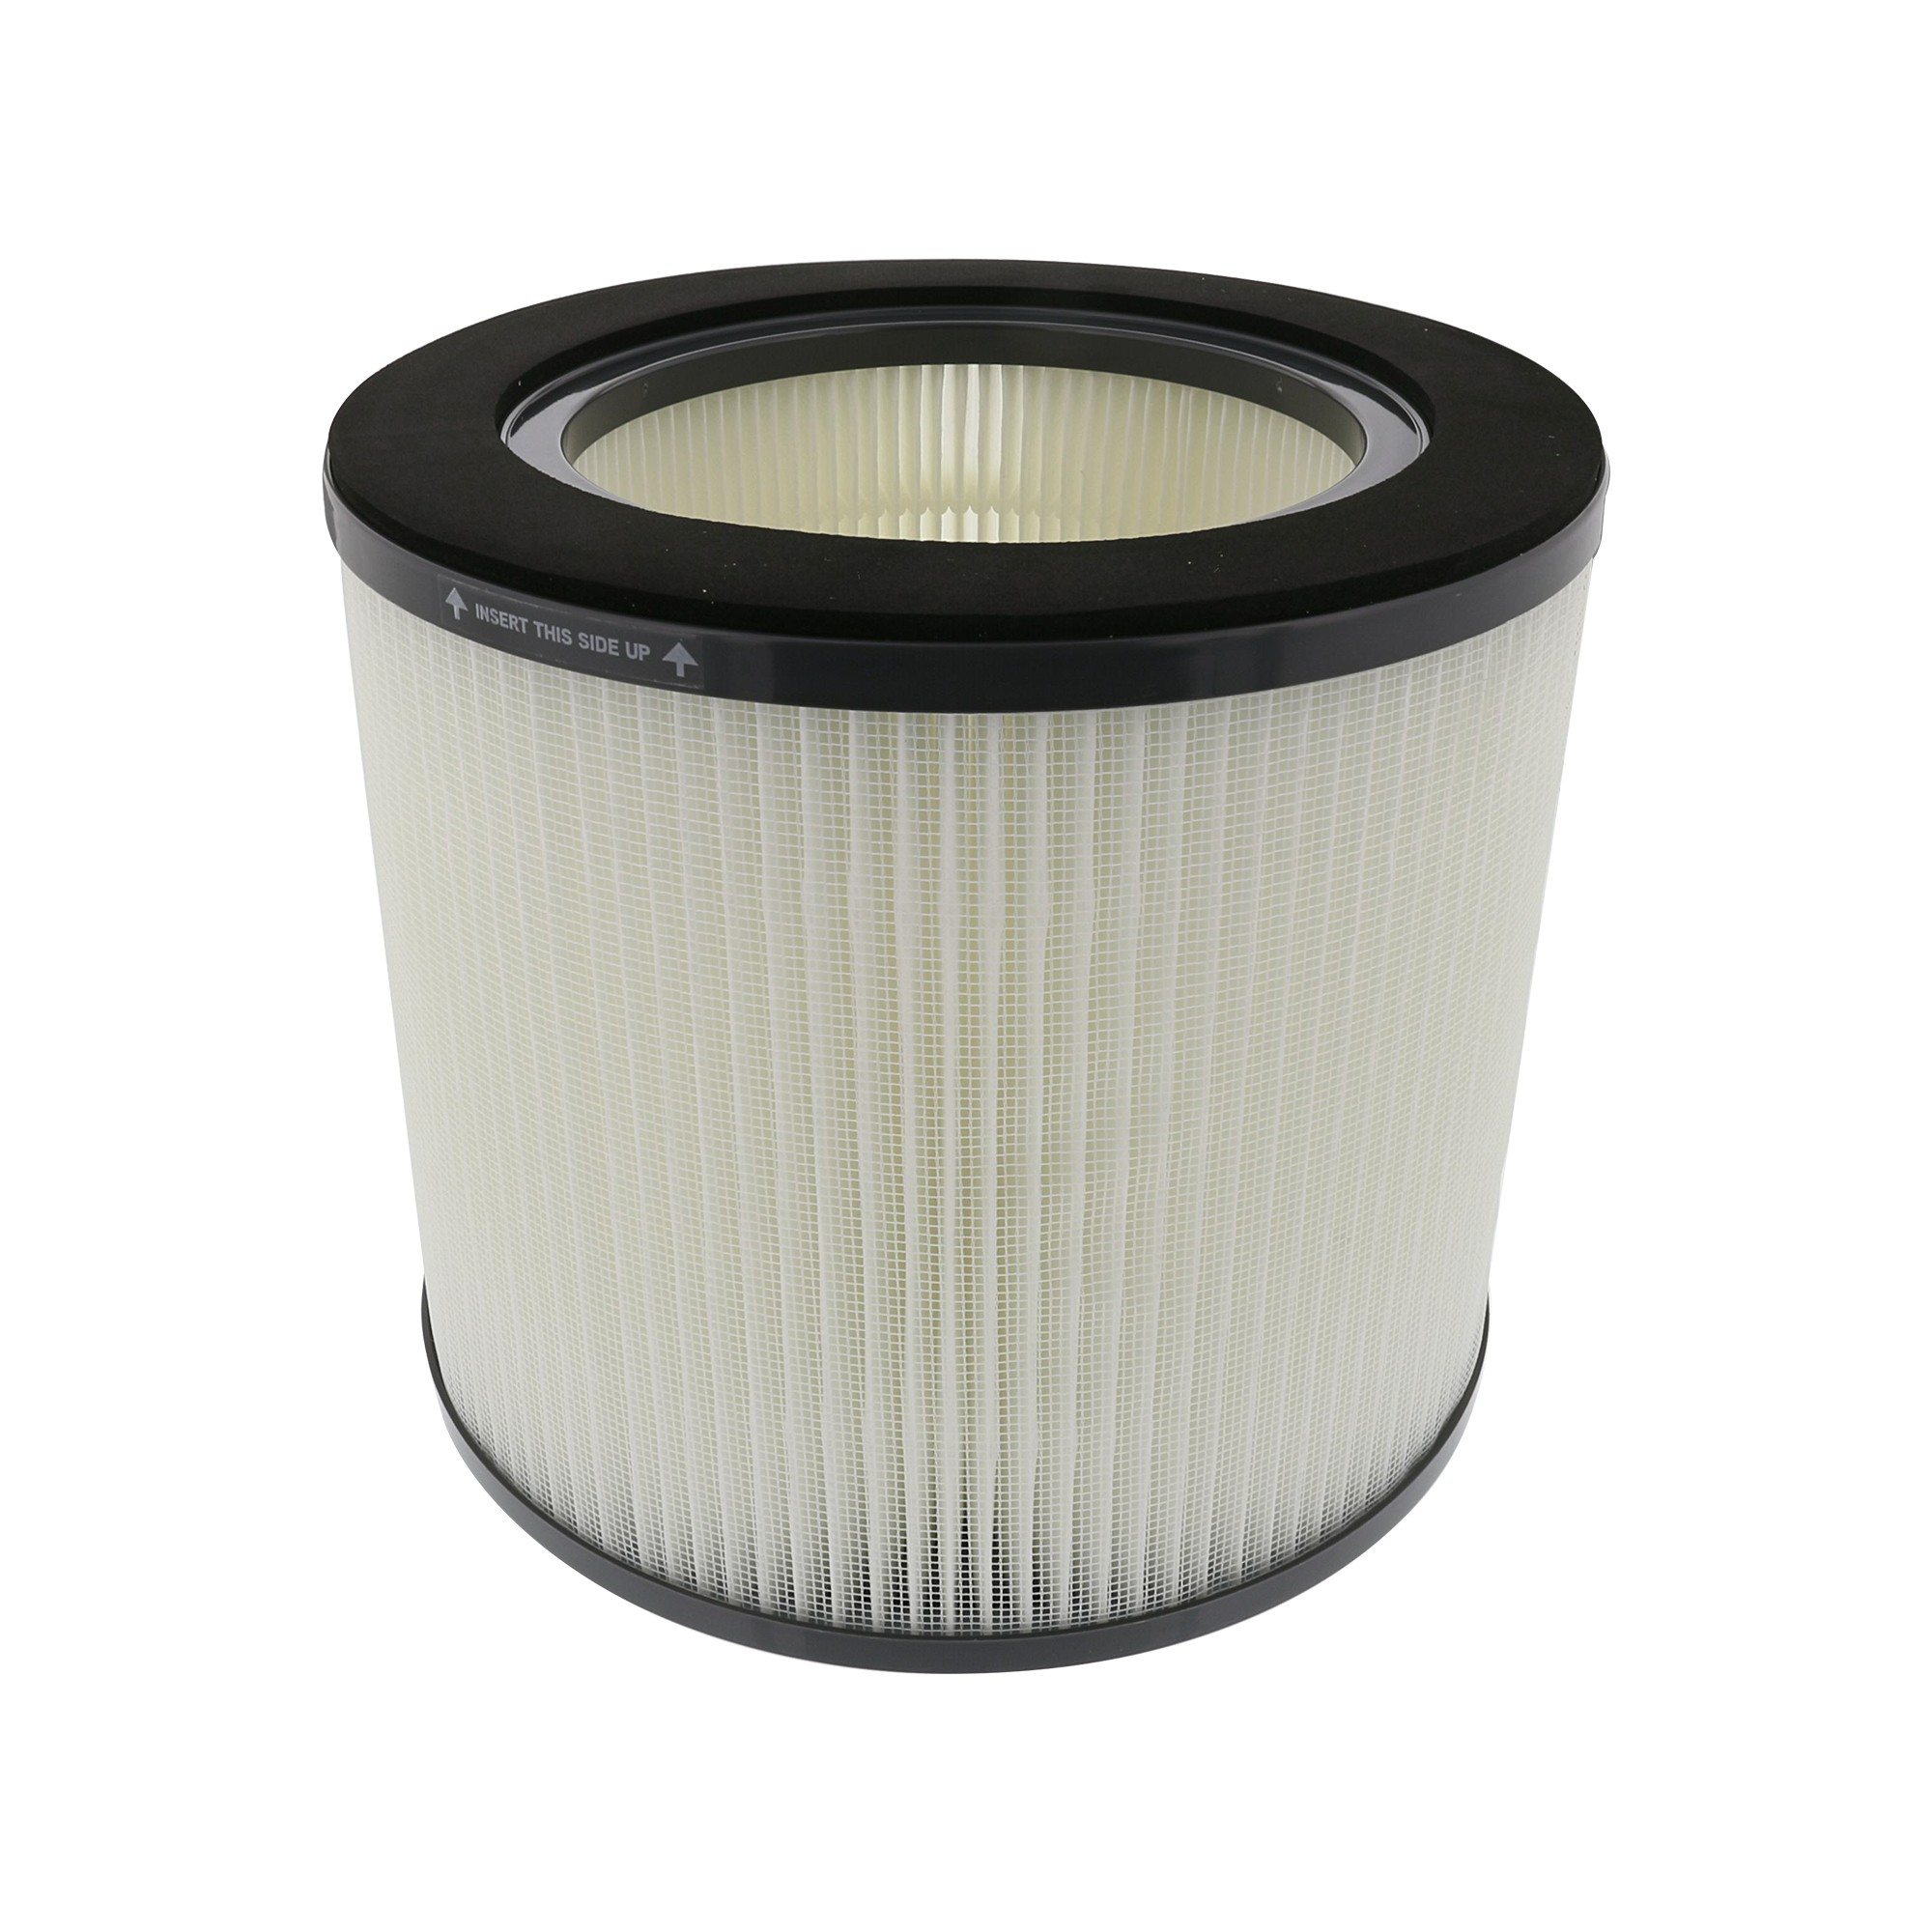 Filter Kit for Pure Air 200